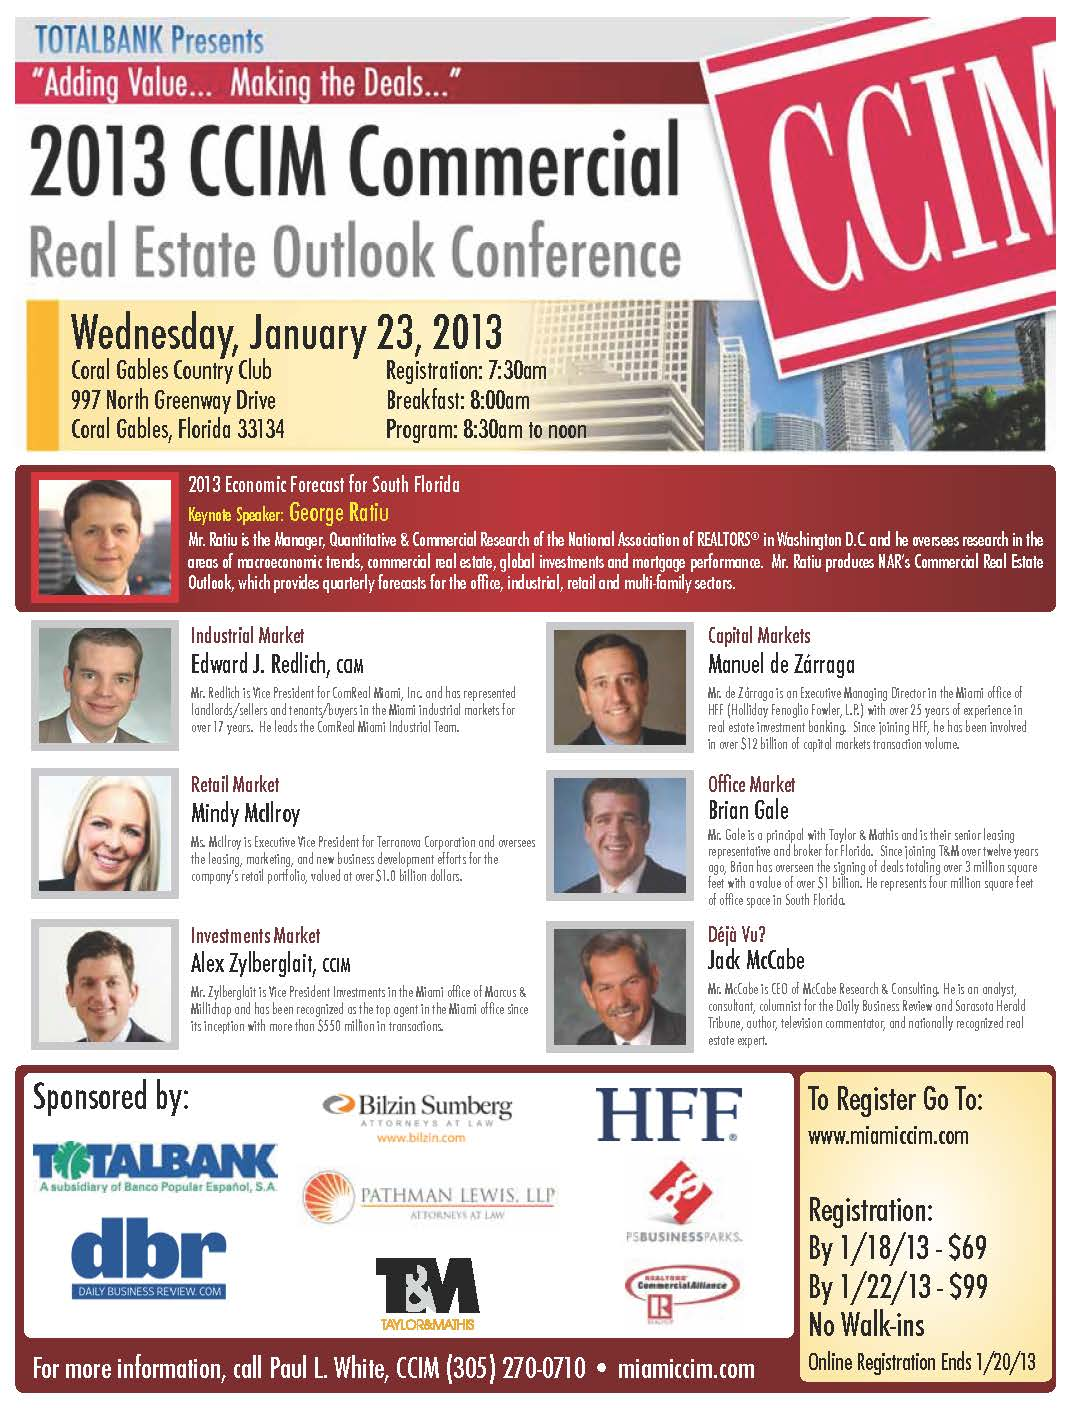 ccim miami outlook conference 2013